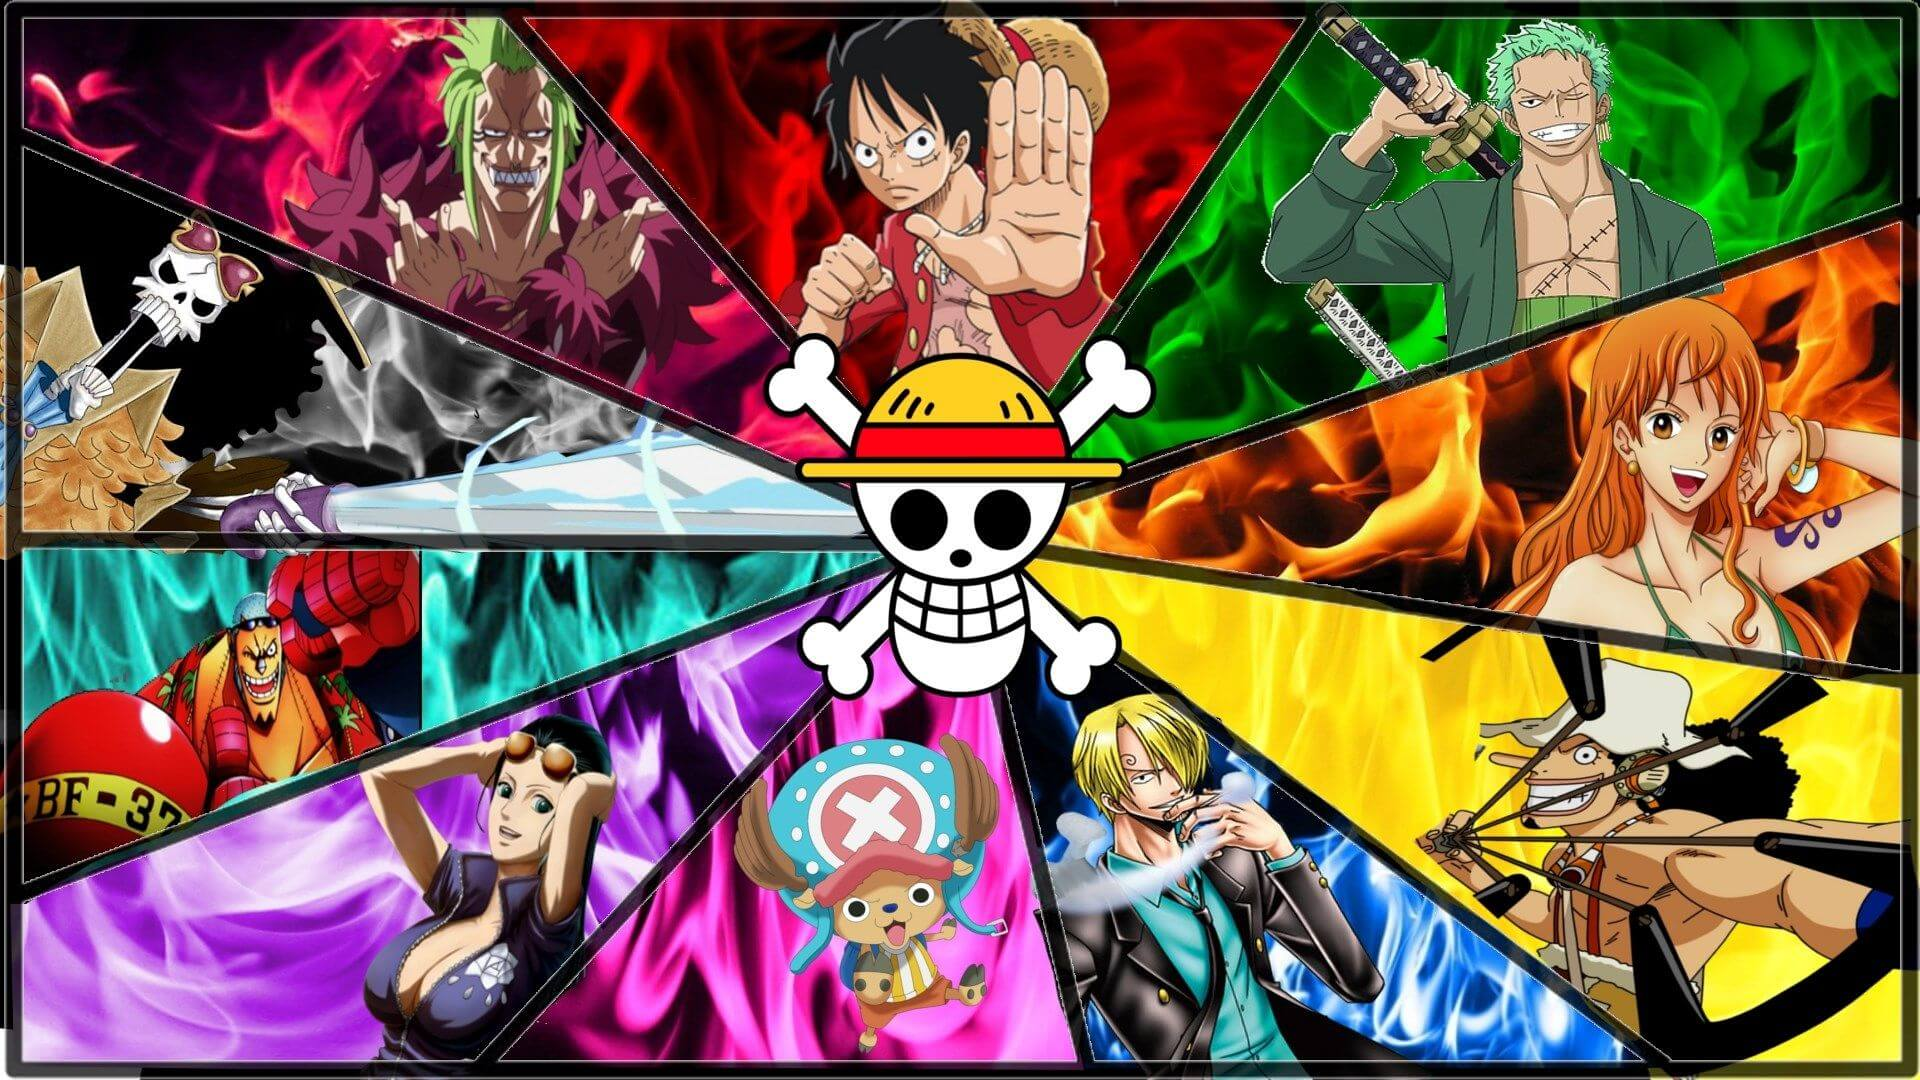 One Piece Episode 958 Subtitle Indonesia